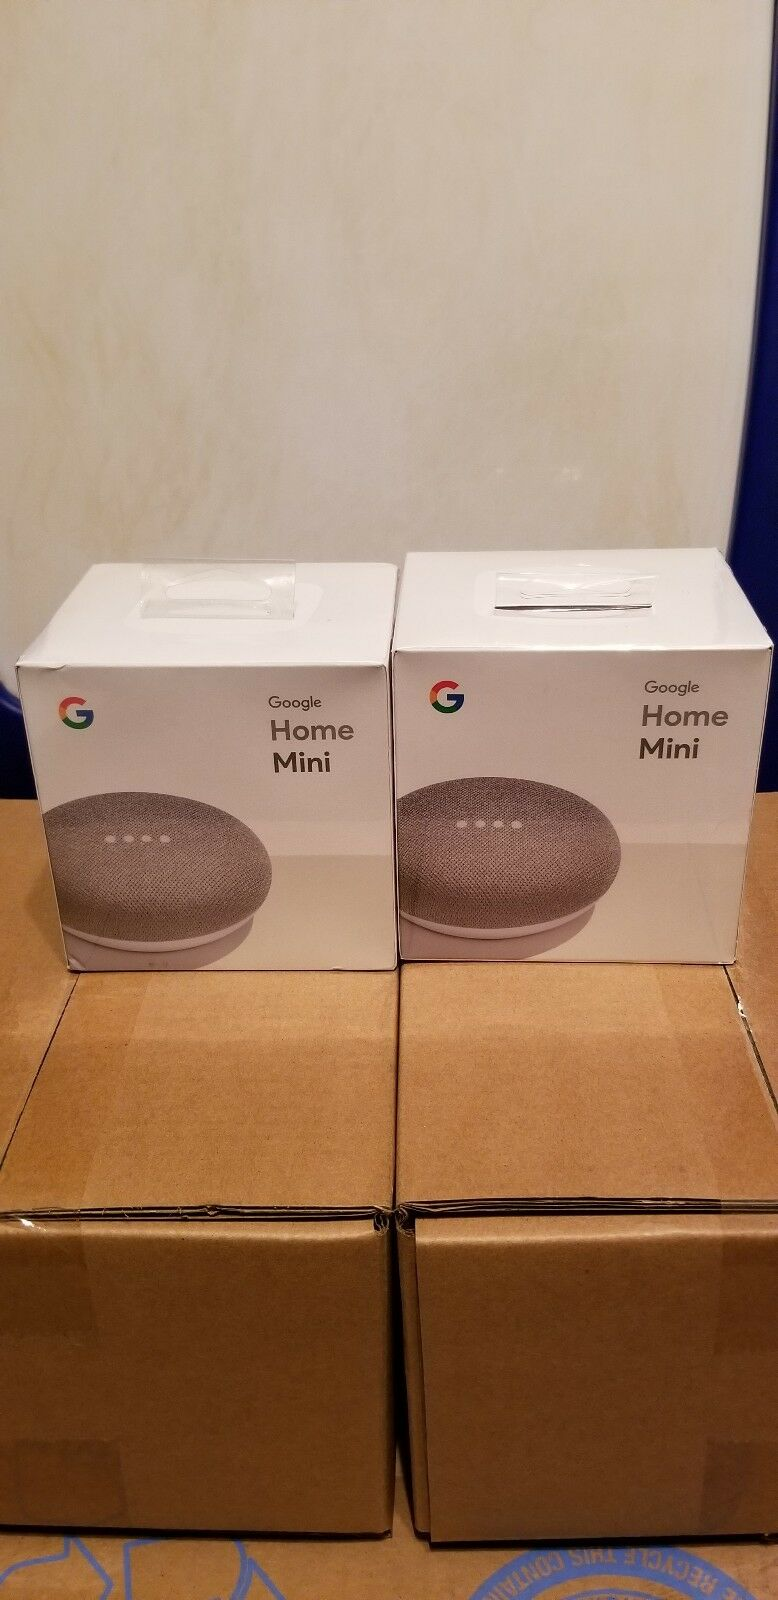 Google Mini lot of 2 - Google Personal Assistant - Chalkl- Sealed Brand New